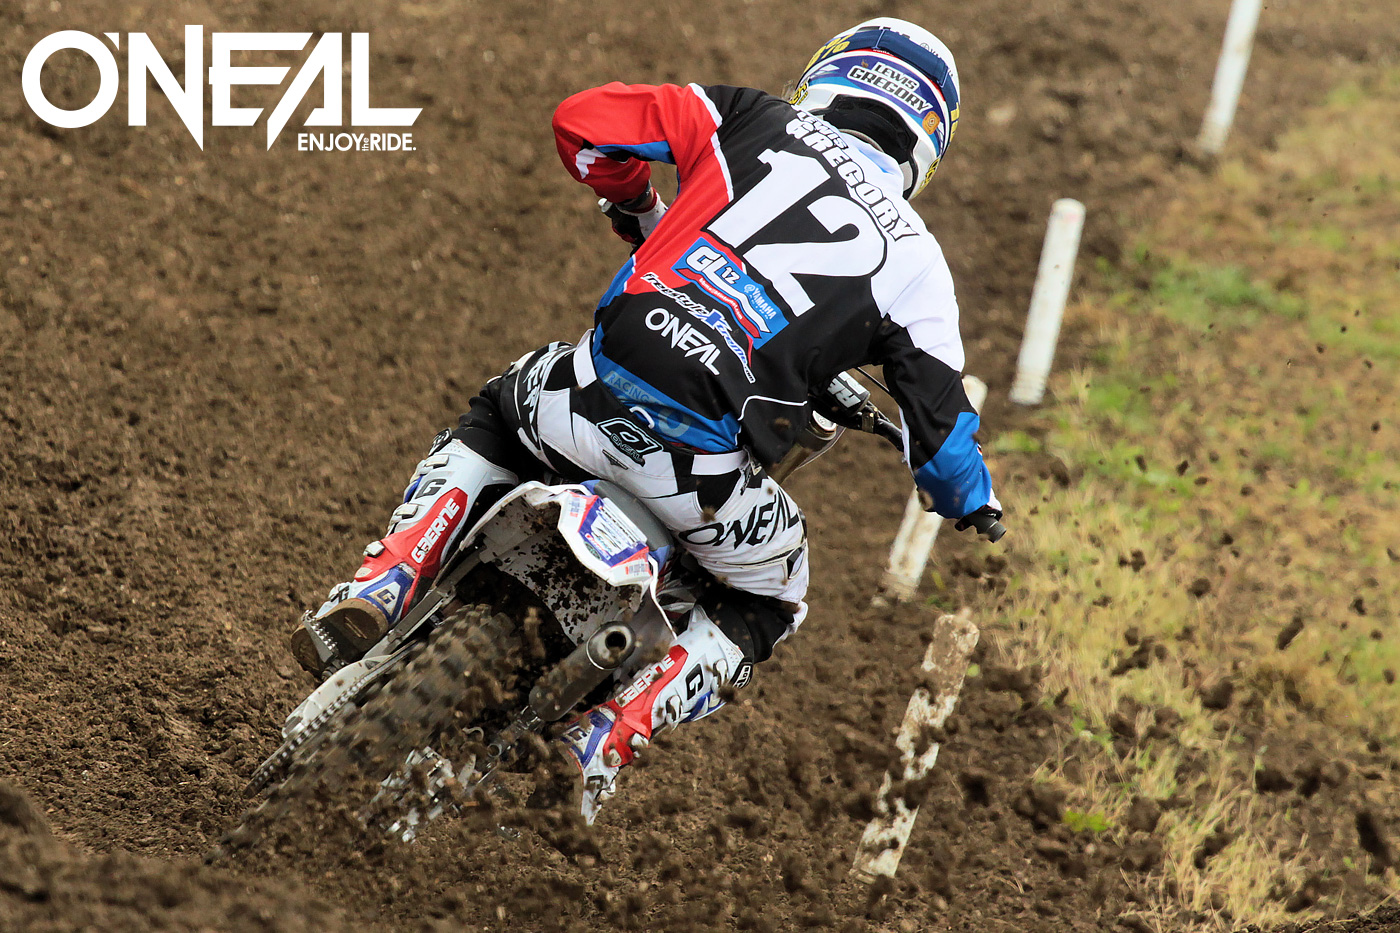 O'Neal supported GL12 Yamaha riders Brad Anderson and Lewis Gregory continued their domination of the EMX300 class at Matterley Basin last weekend.